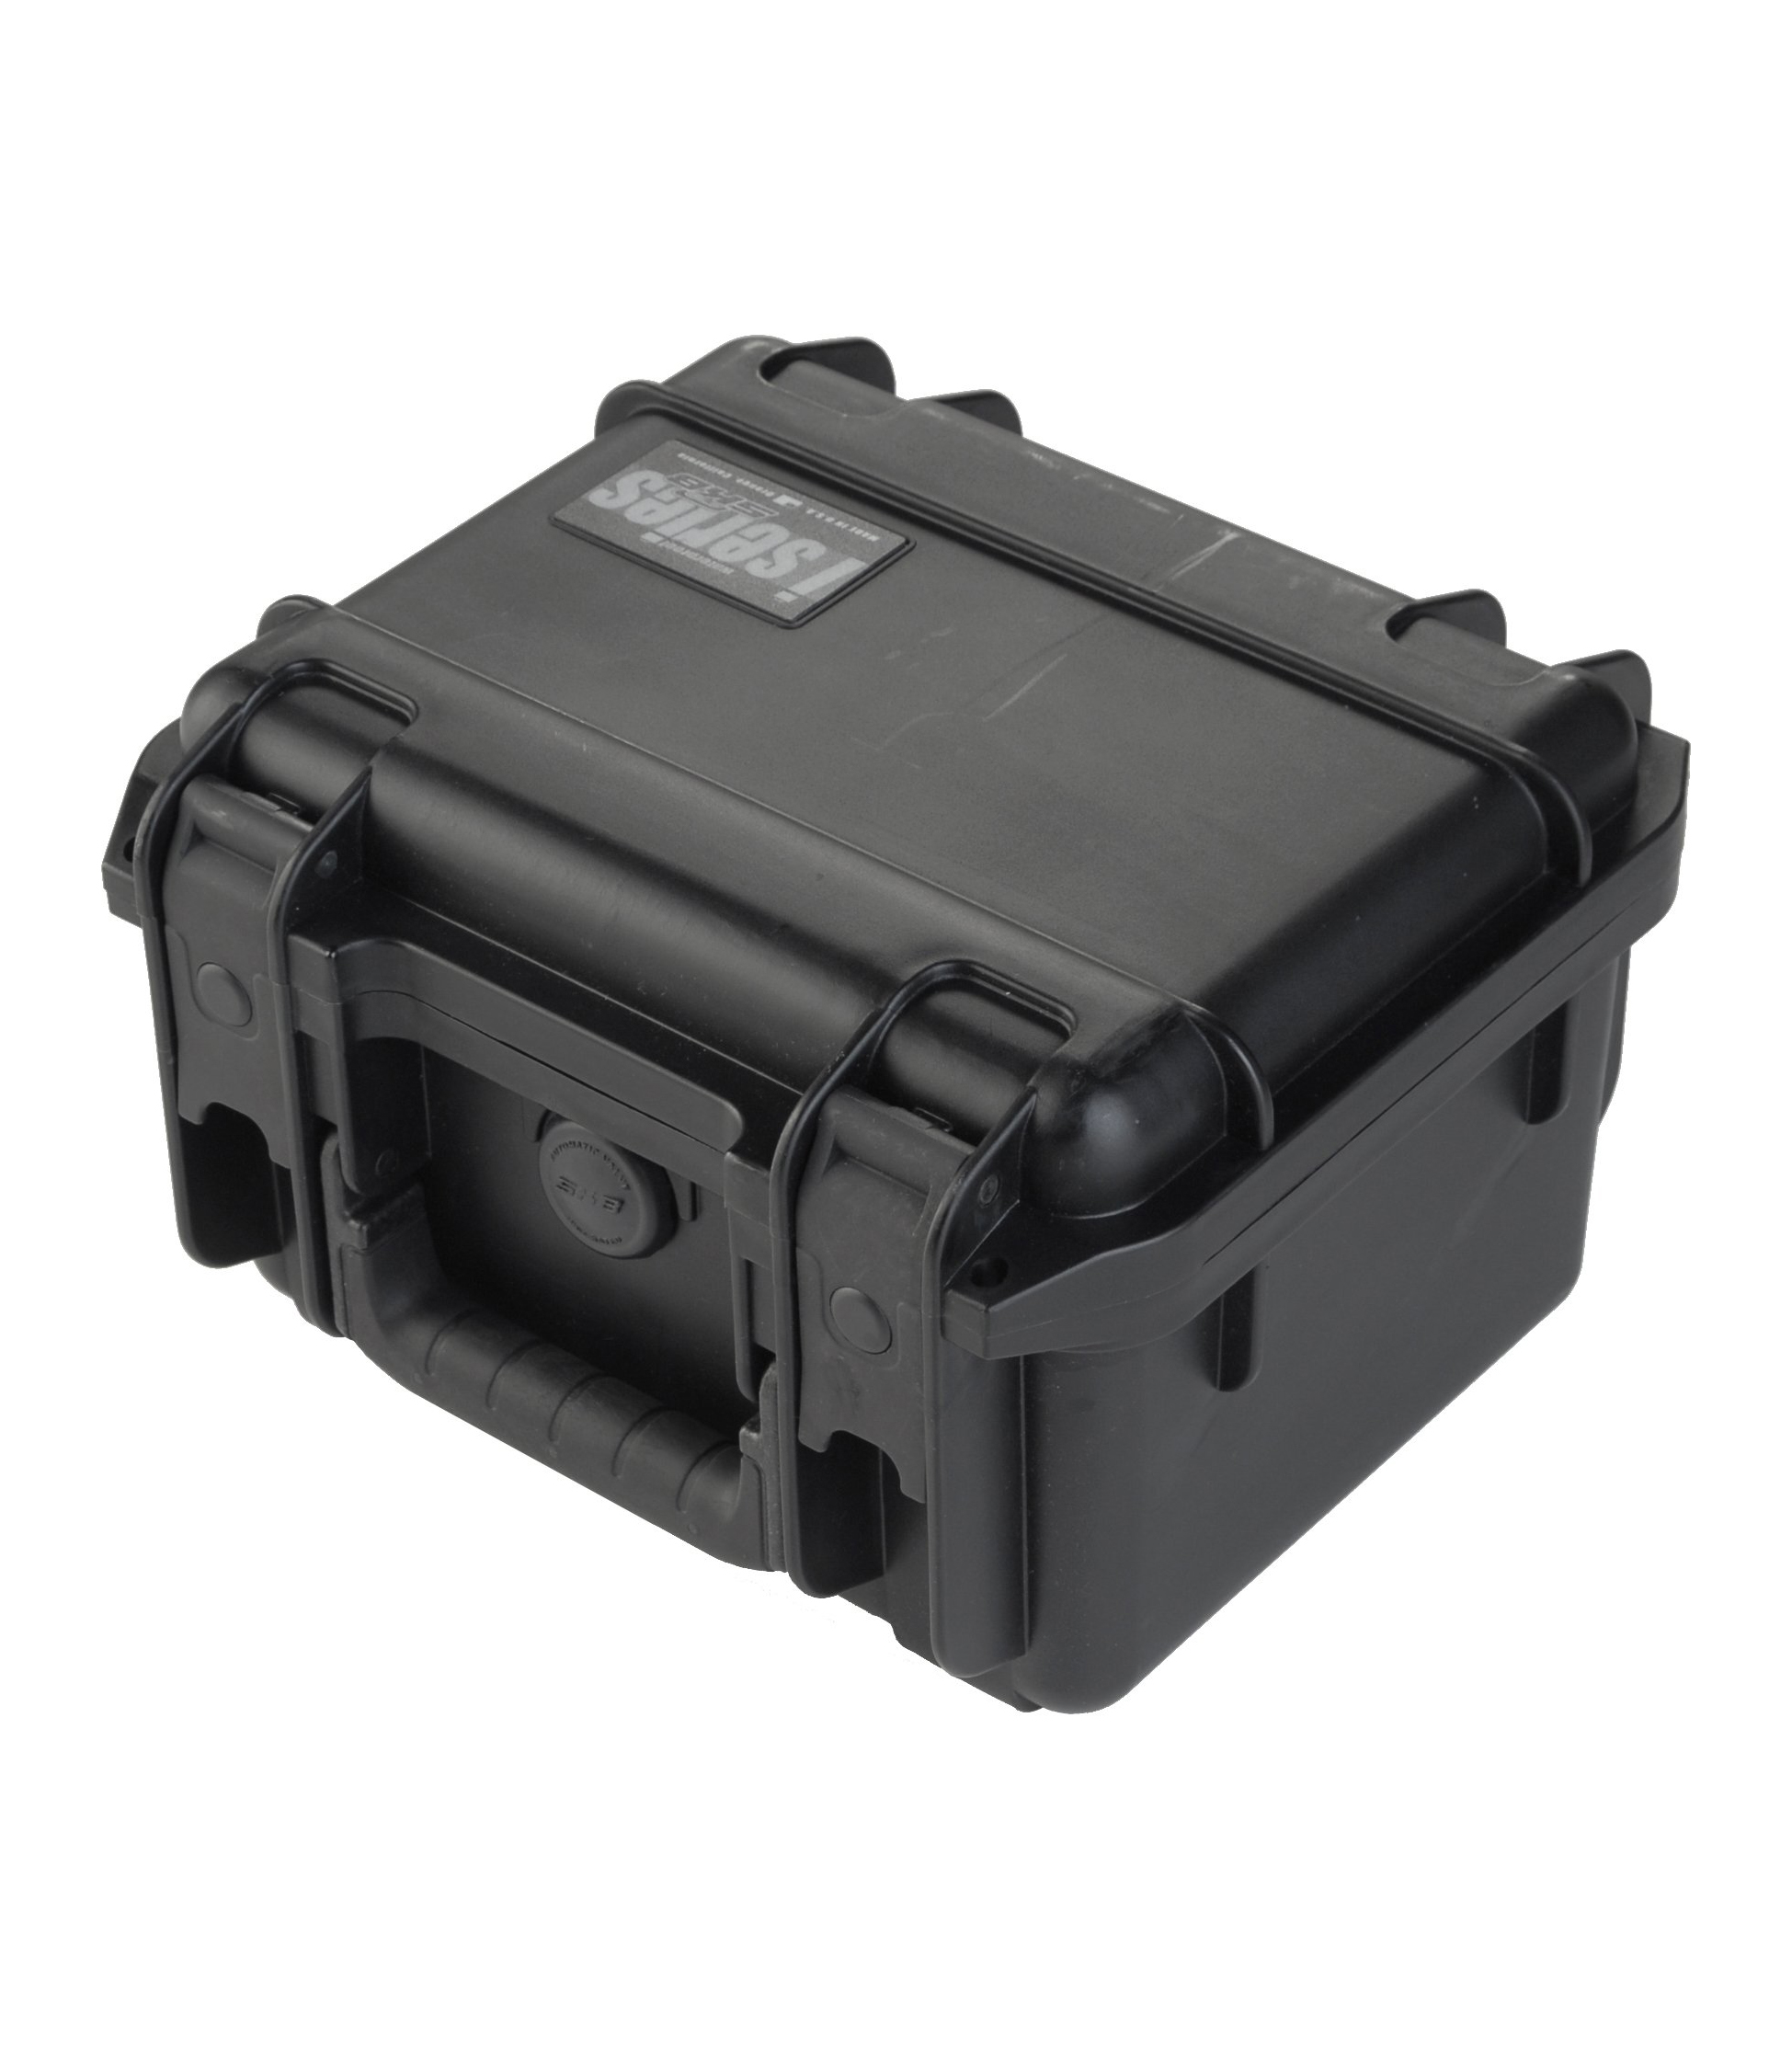 Buy skb - 3I 0907 6BDD 9 x 7 x 6 w mini latch Two layer